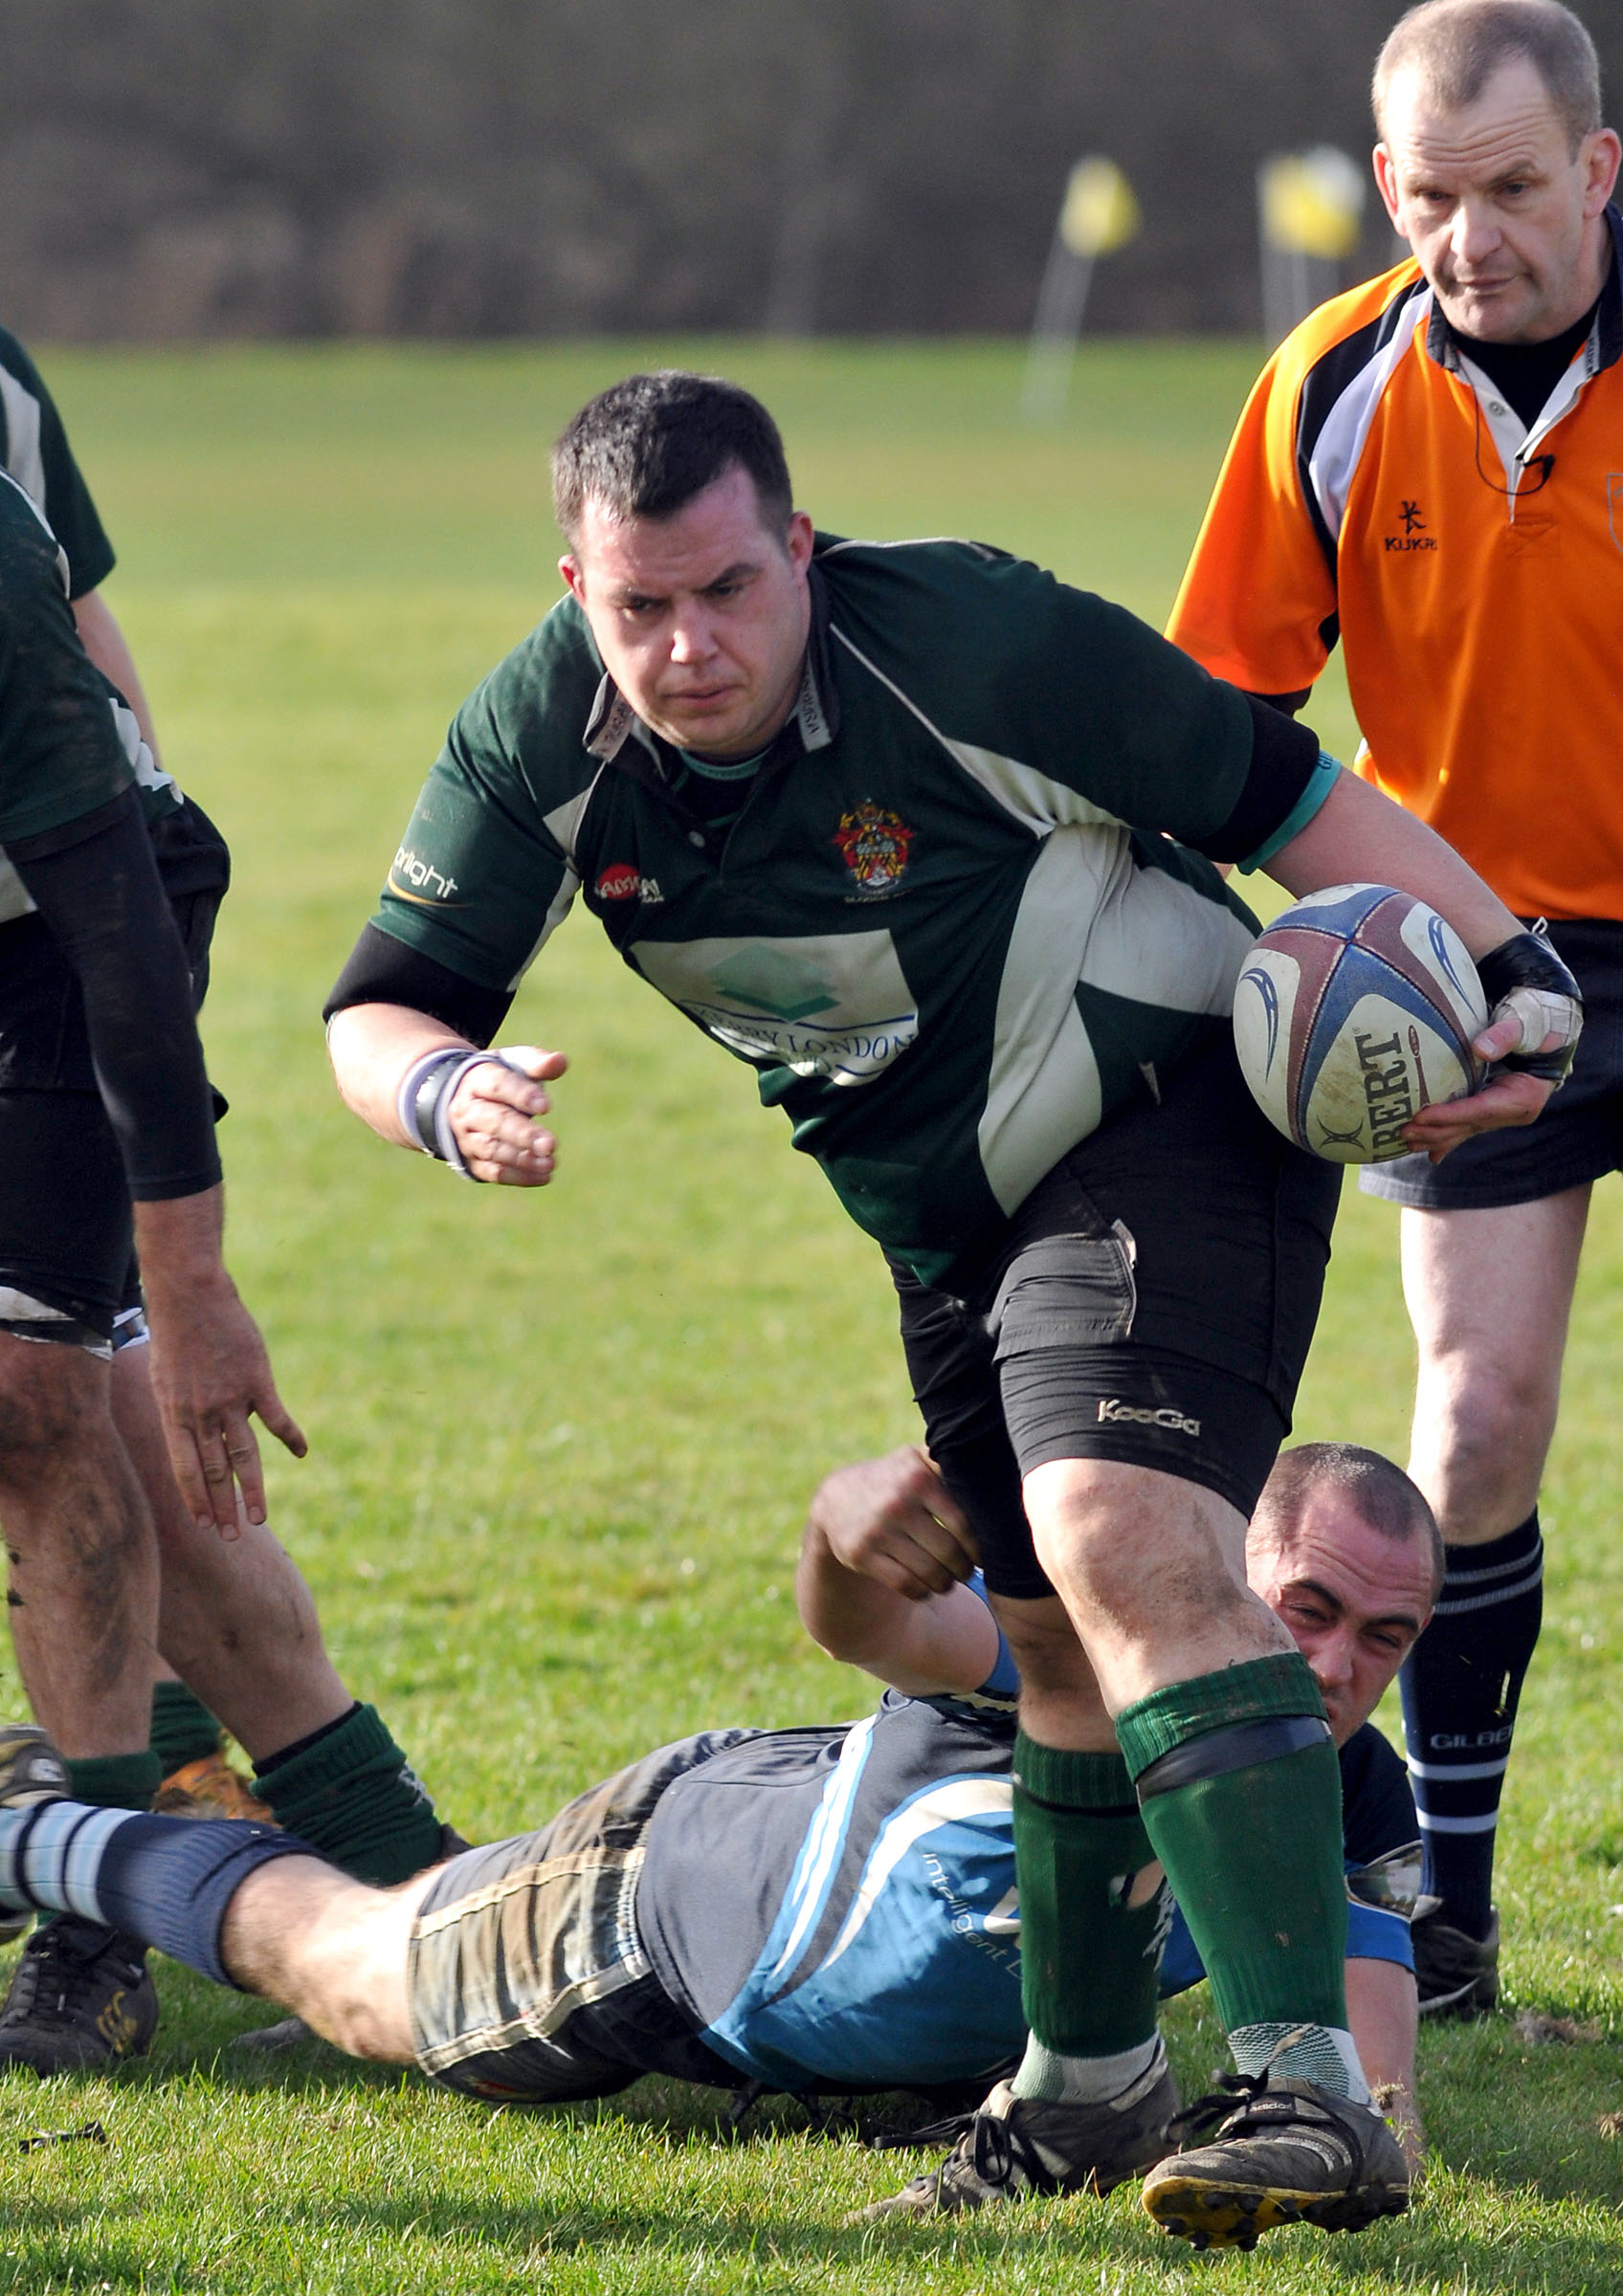 James Flisher scored two tries for Slough in the 42-27 win away at Didcot on Saturday.